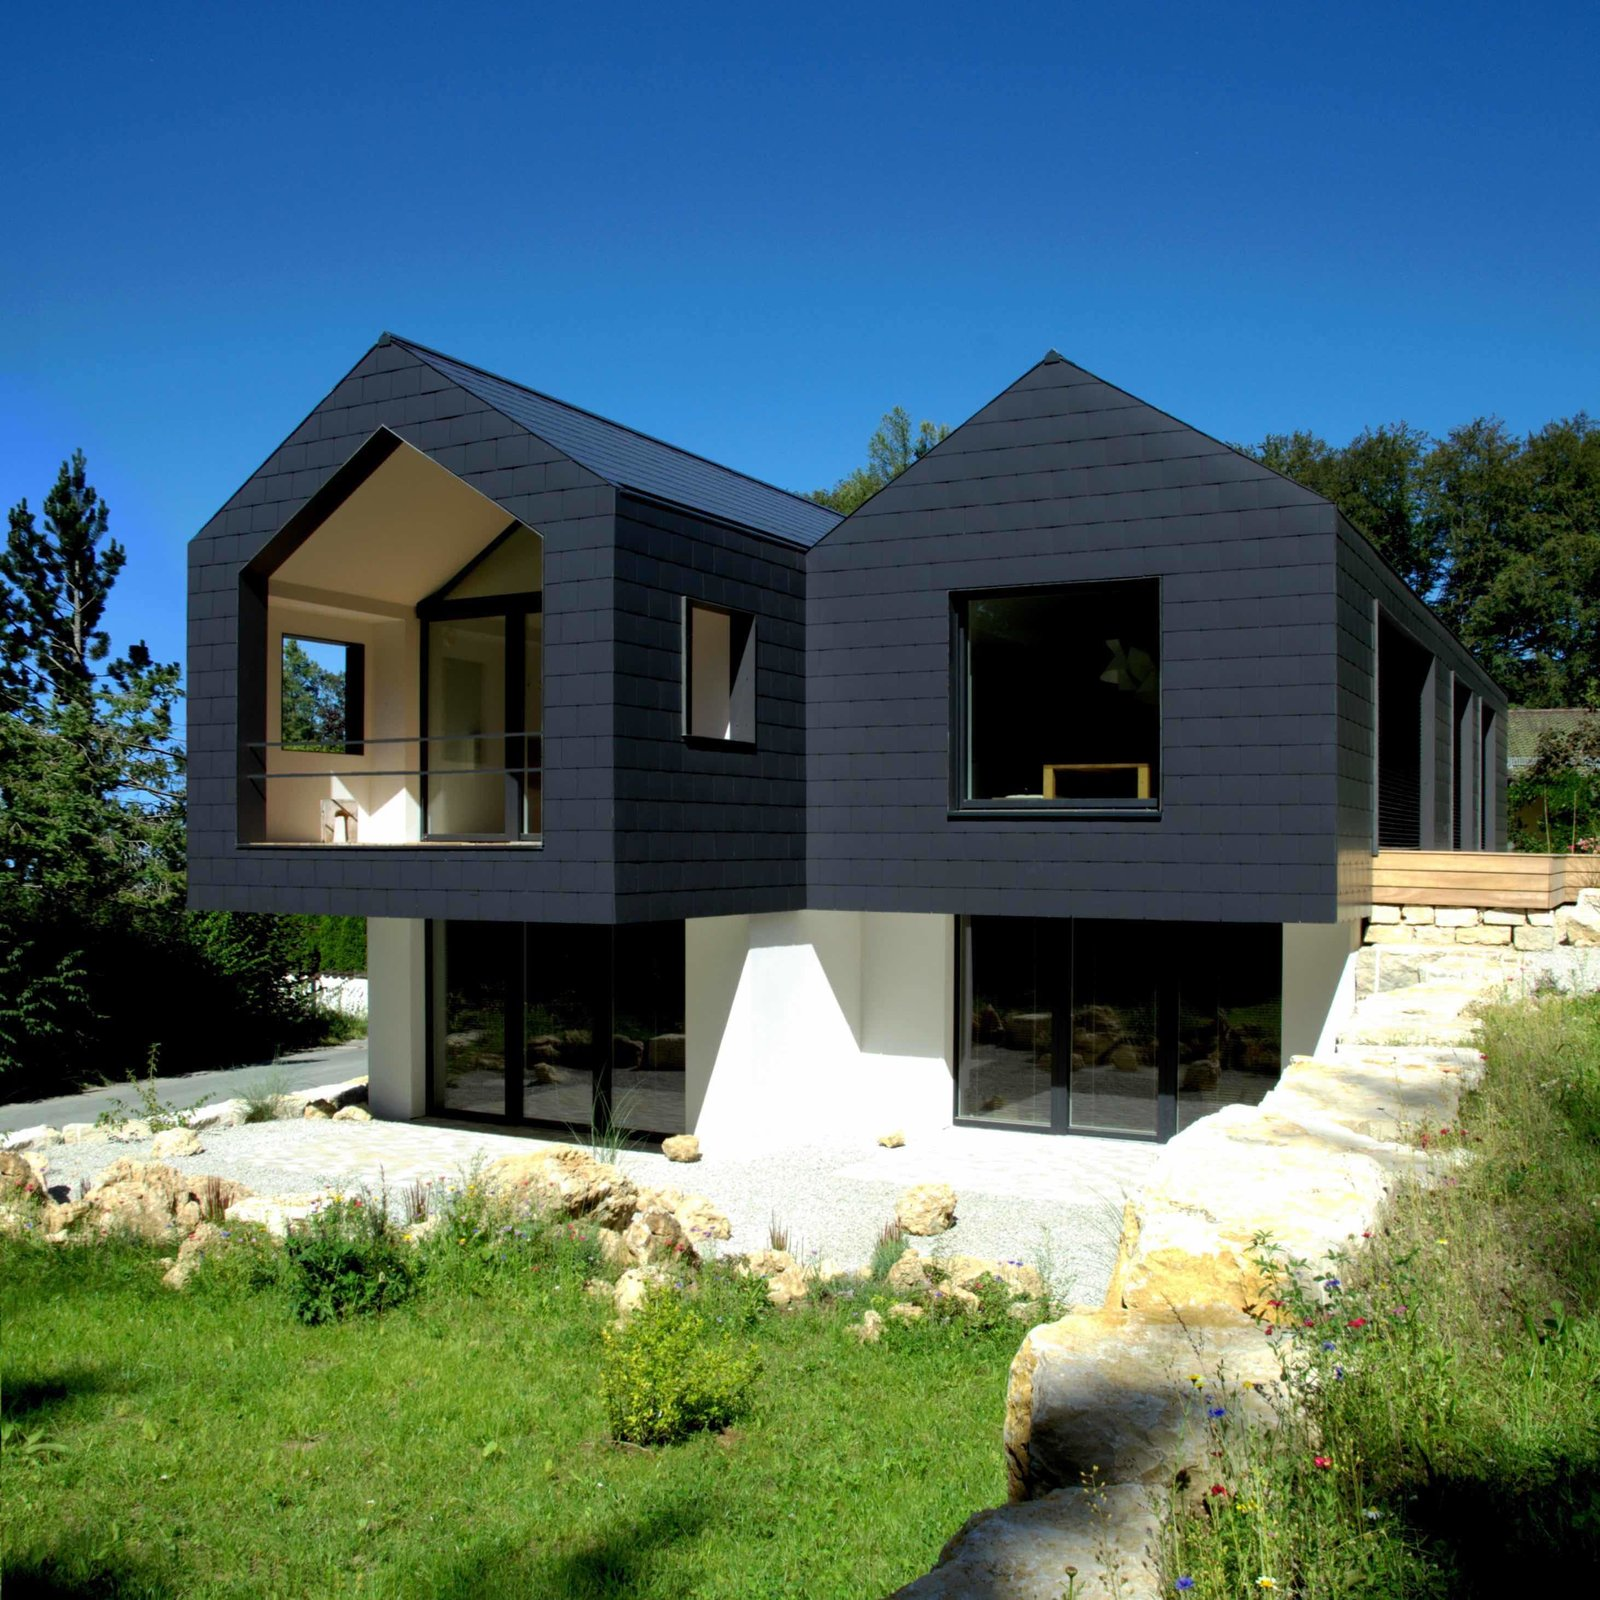 Tagged: Outdoor, Trees, Grass, Front Yard, and Boulders. Refugium Betzenstein by Dwell